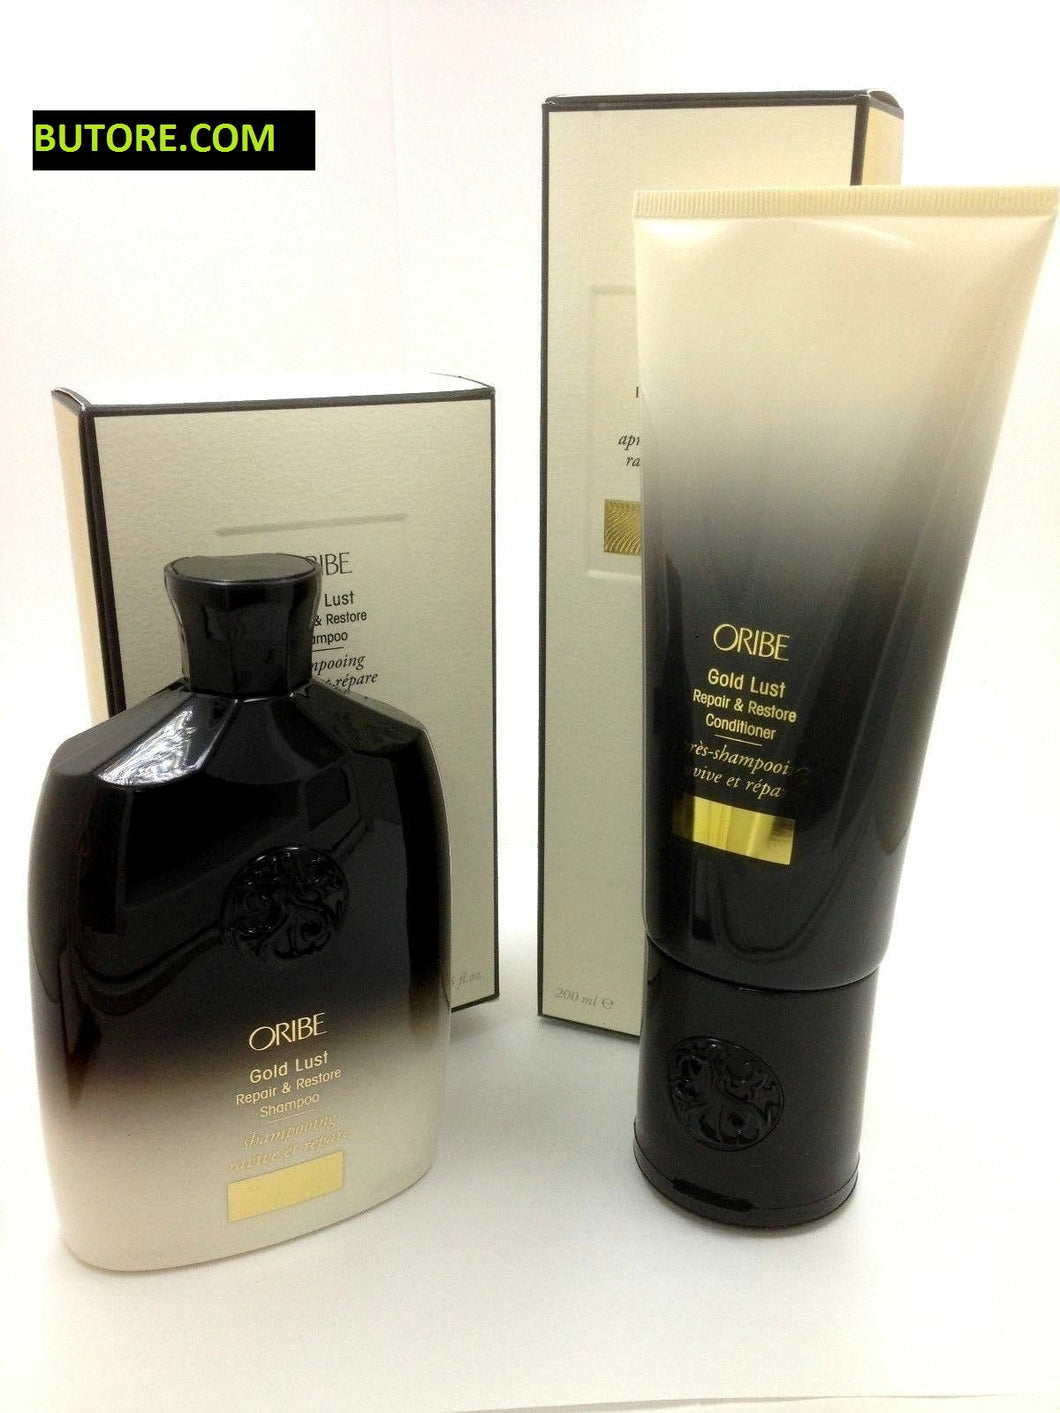 Oribe Gold Lust Repair & Restore Shampoo & Conditioner 2 piece